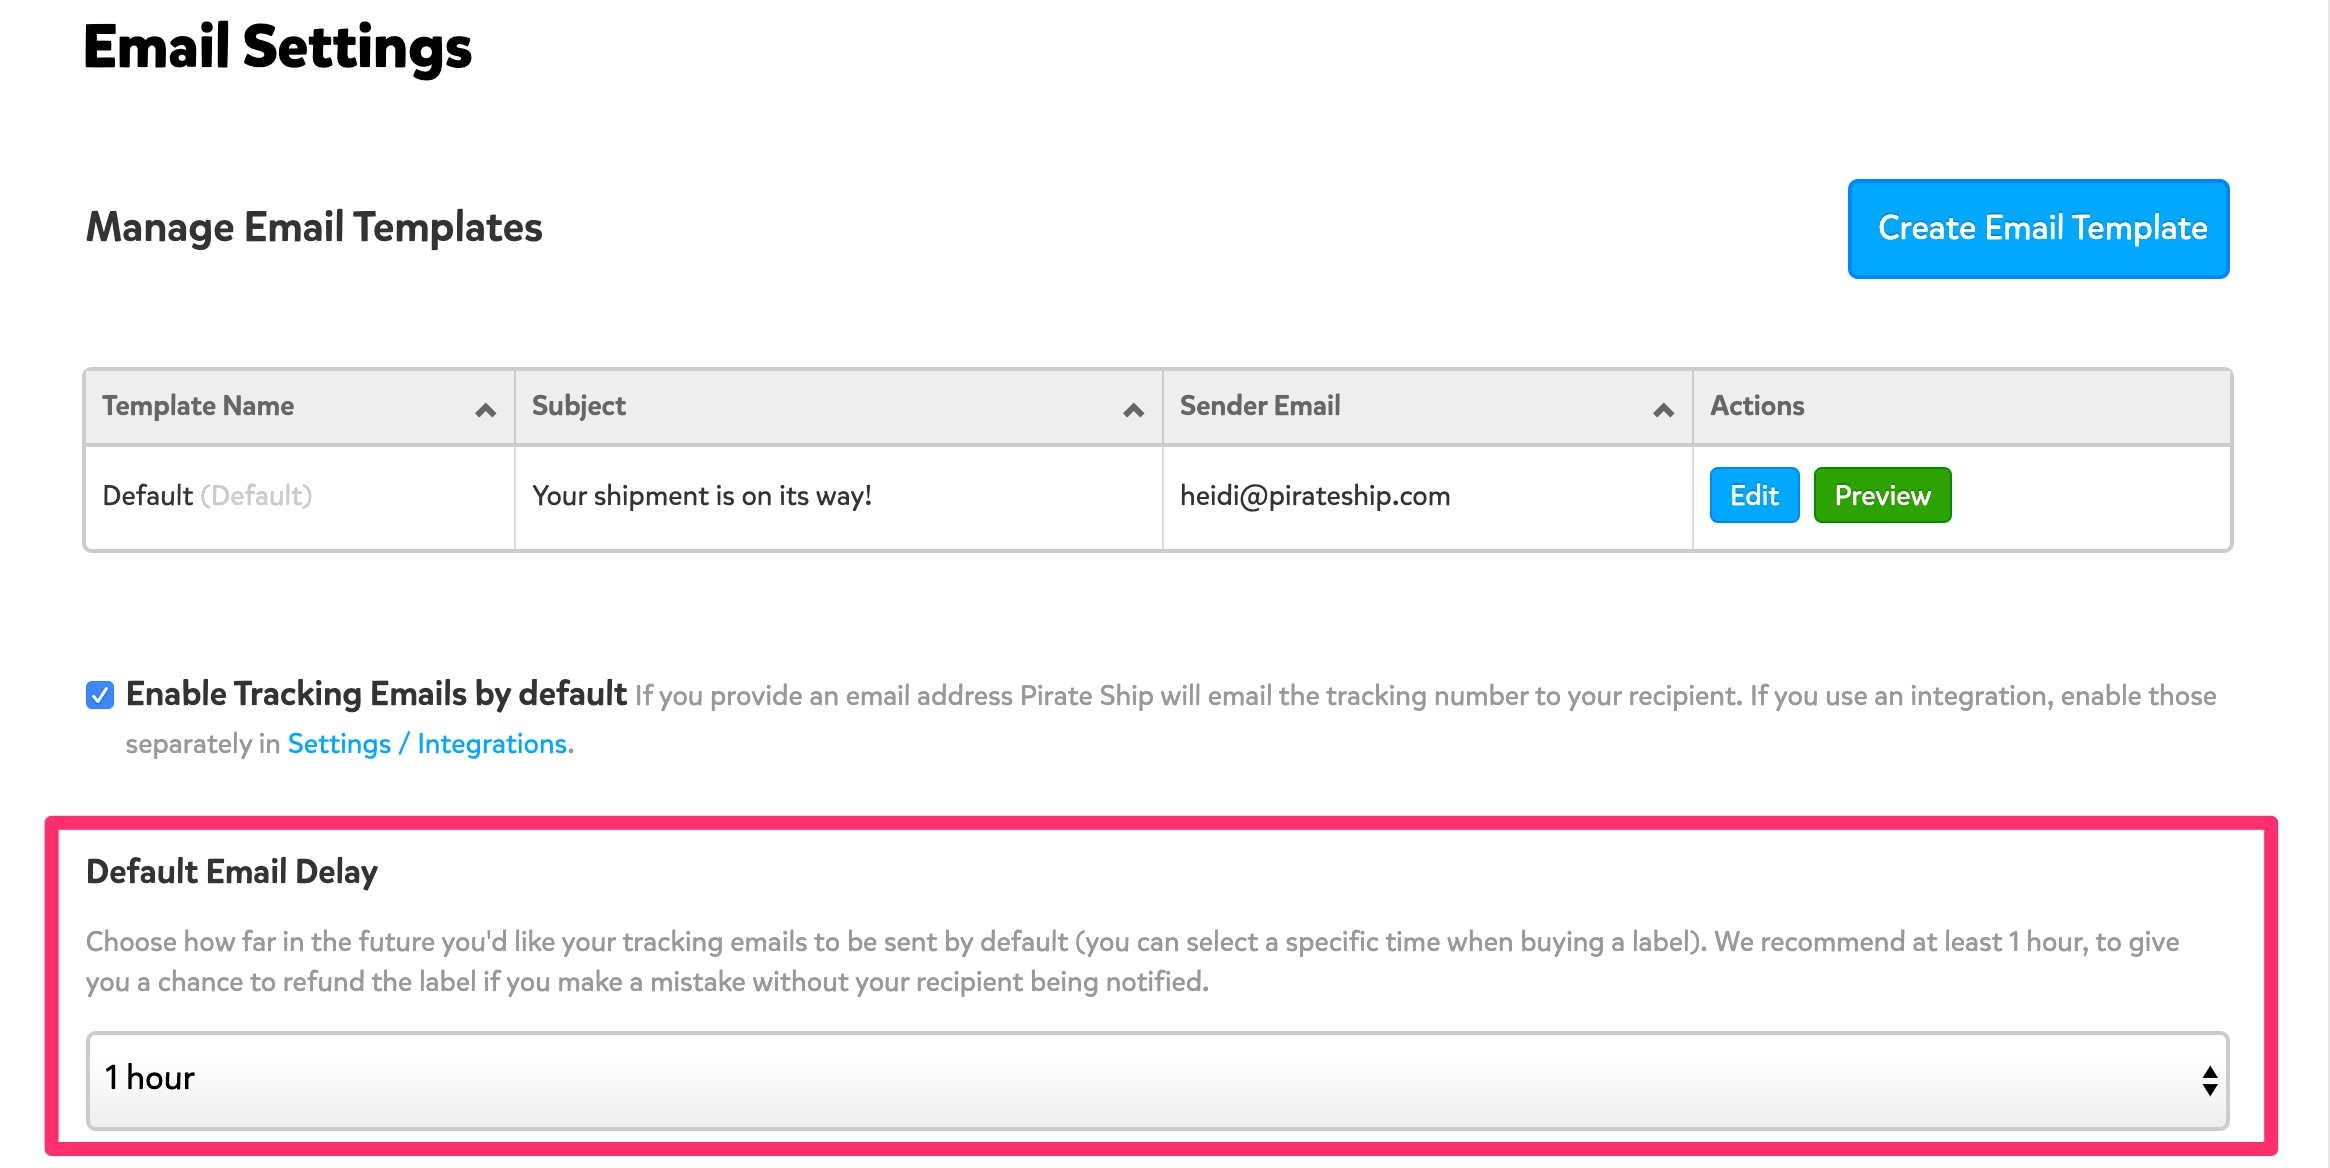 A screenshot showing the Tracking Email Settings page. Towards the bottom, a section with the header 'Default Email Delay' is highlighted, and 1 hour is selected in the drop down menu below.